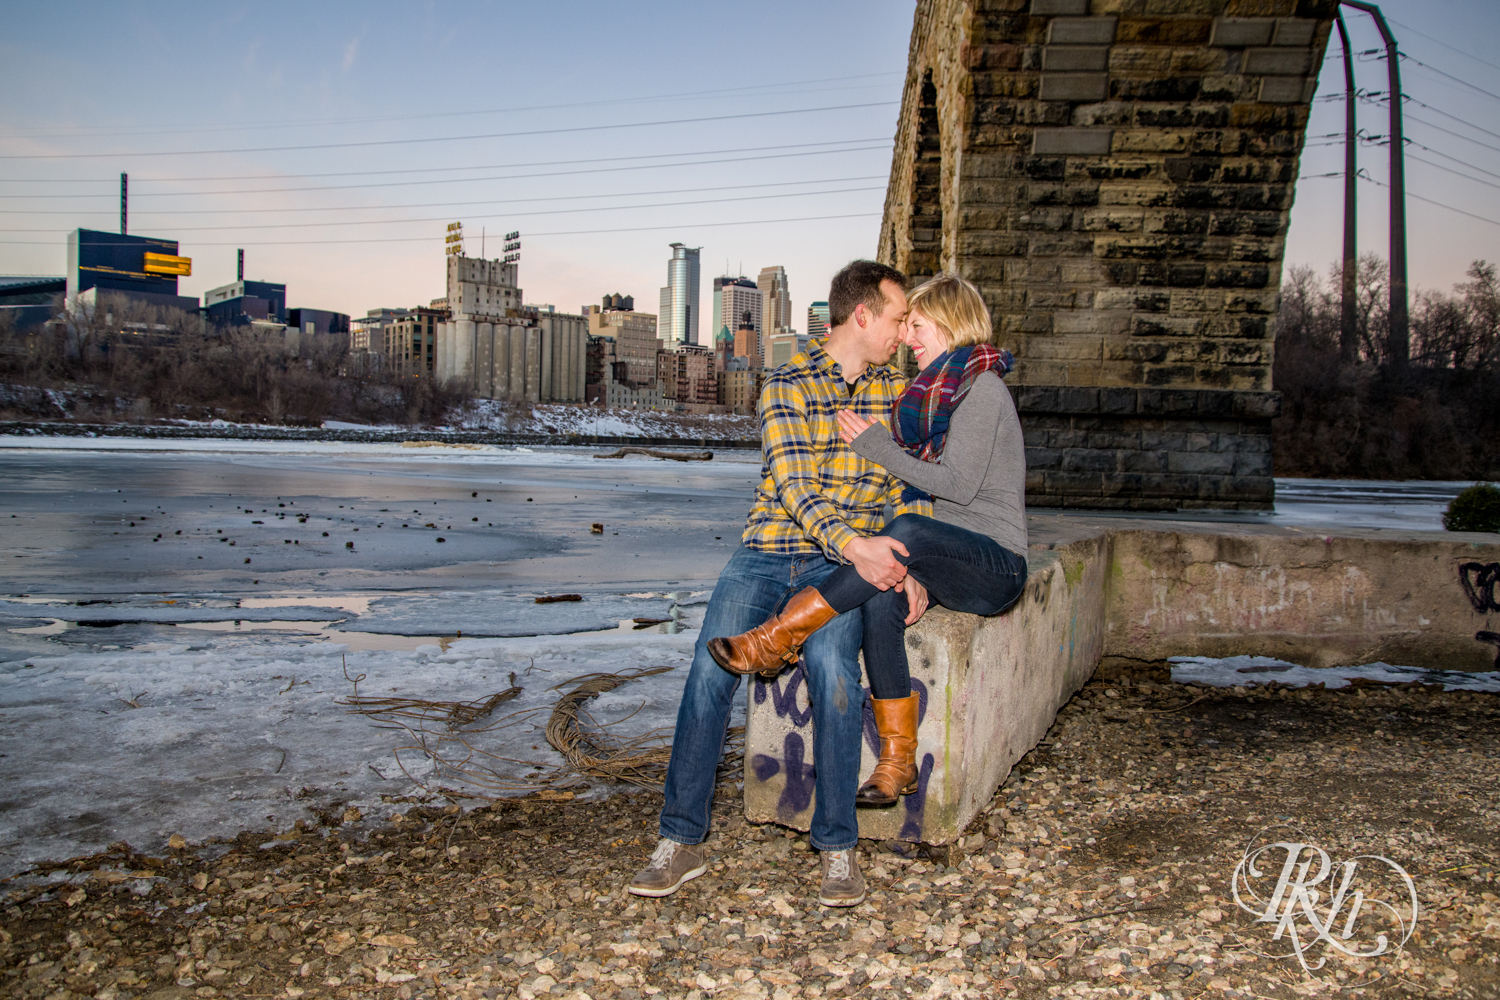 Kate & Kyle - Minnesota Sunrise Engagement Photography - Stone Arch Bridge - RKH Images (11 of 18).jpg